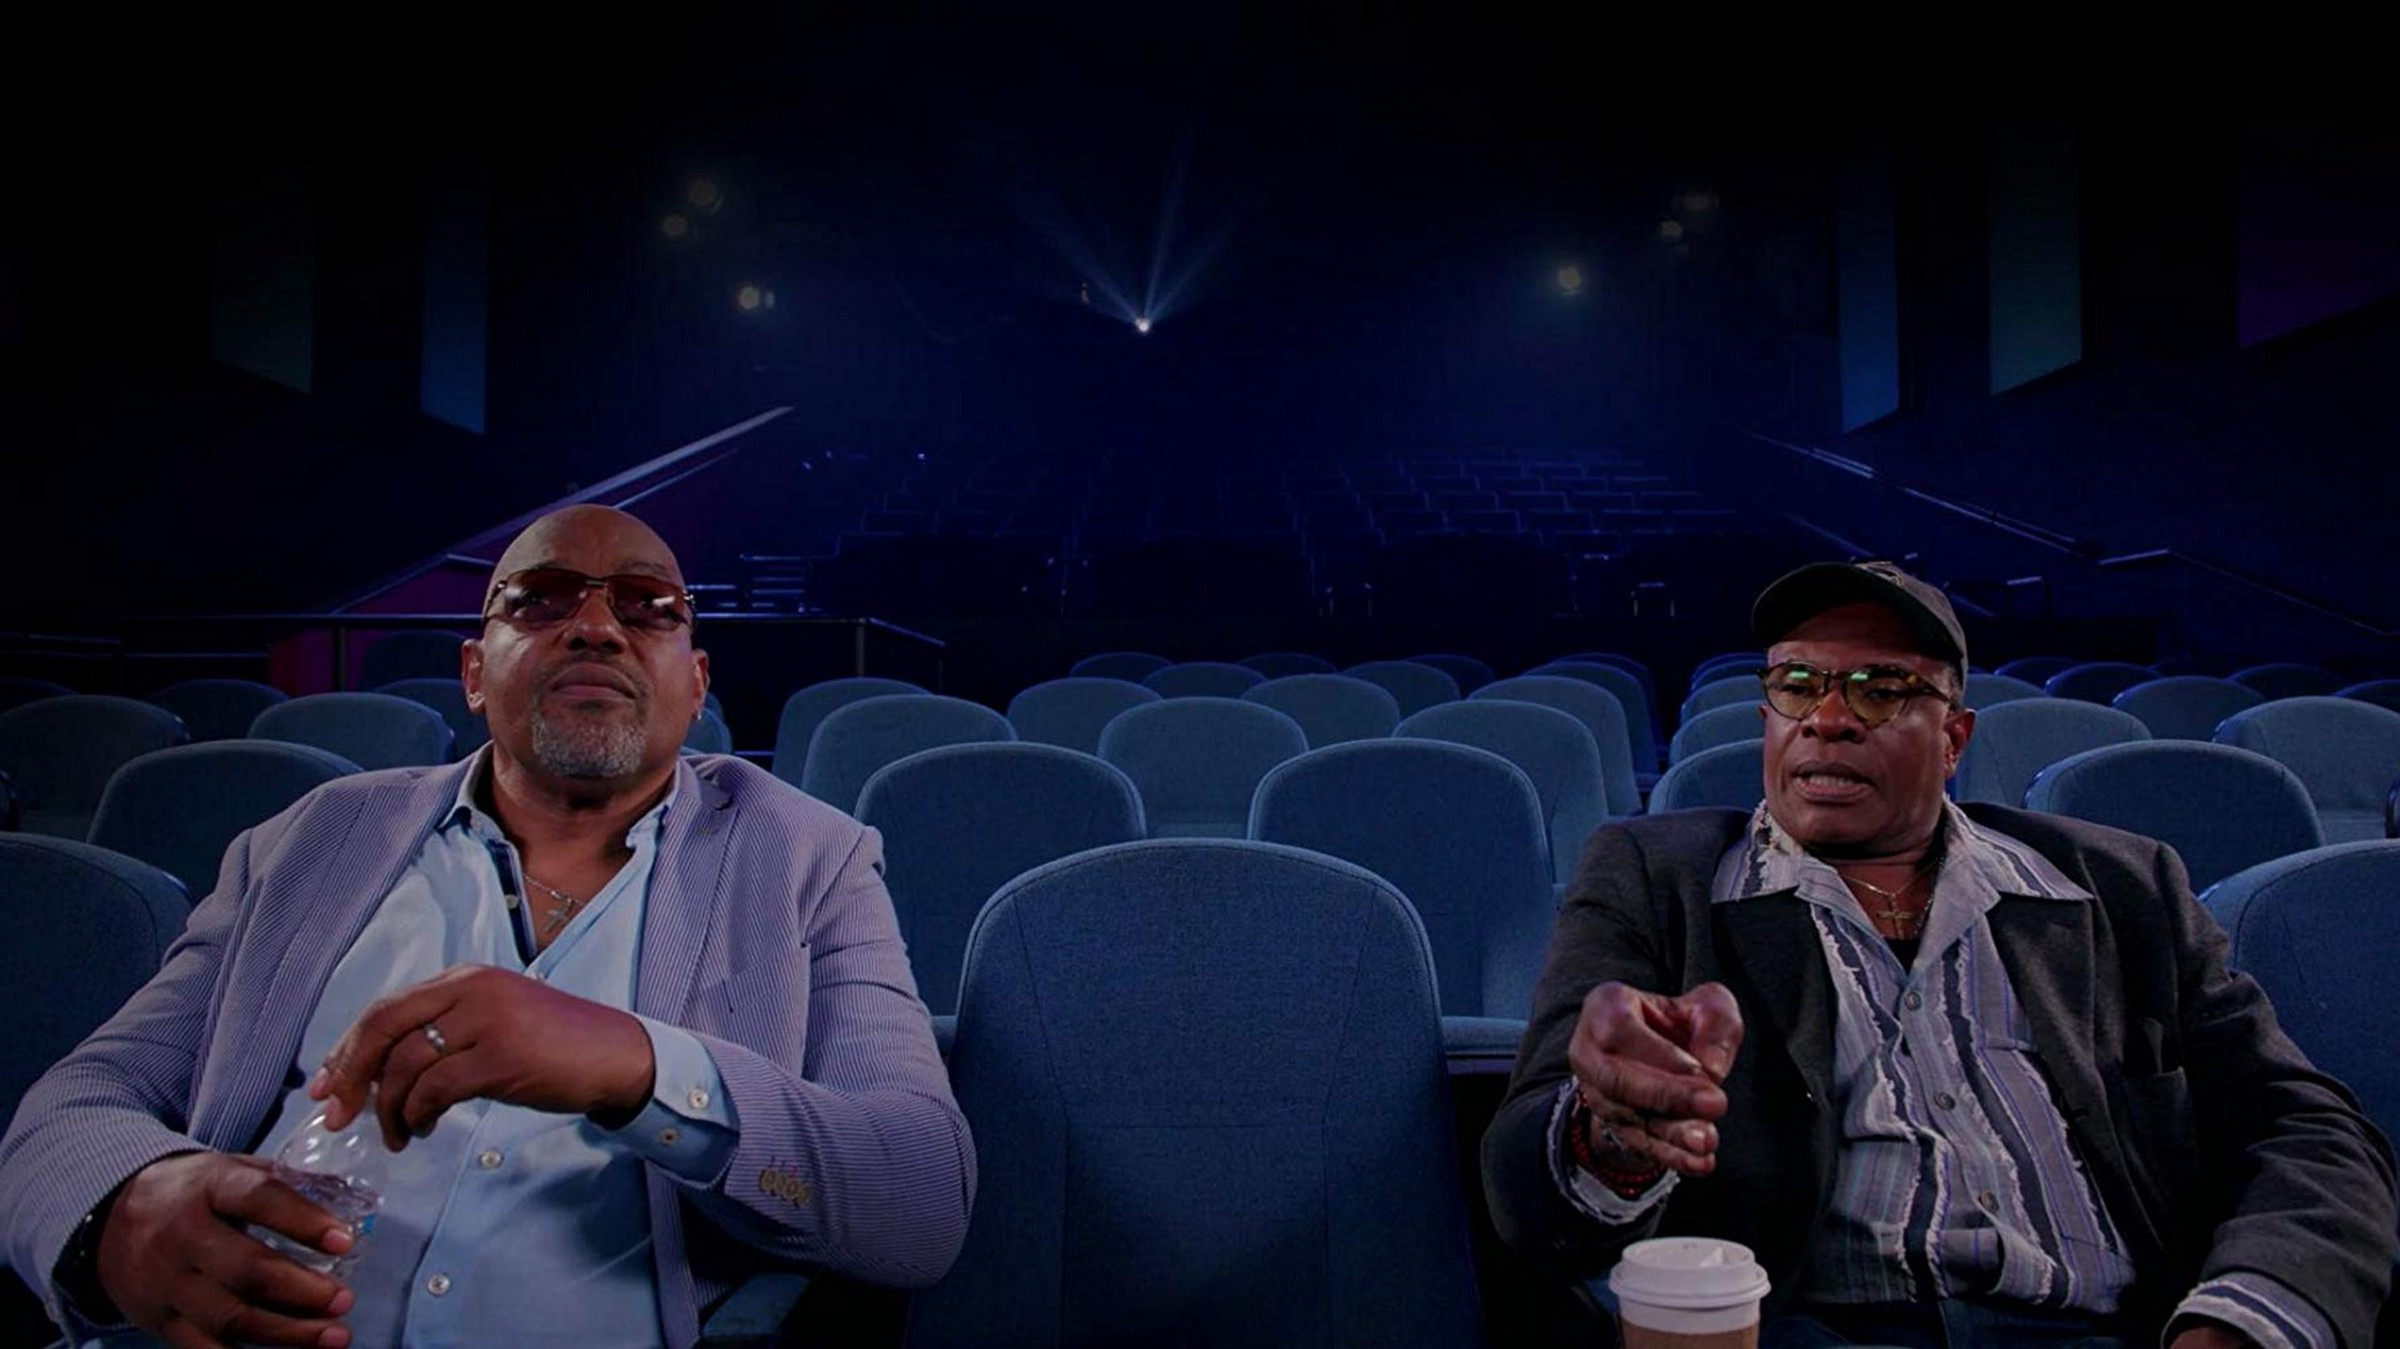 Keith David and Ken Foree (both Black men and prominent actors from horror films) sit in a movie theatre